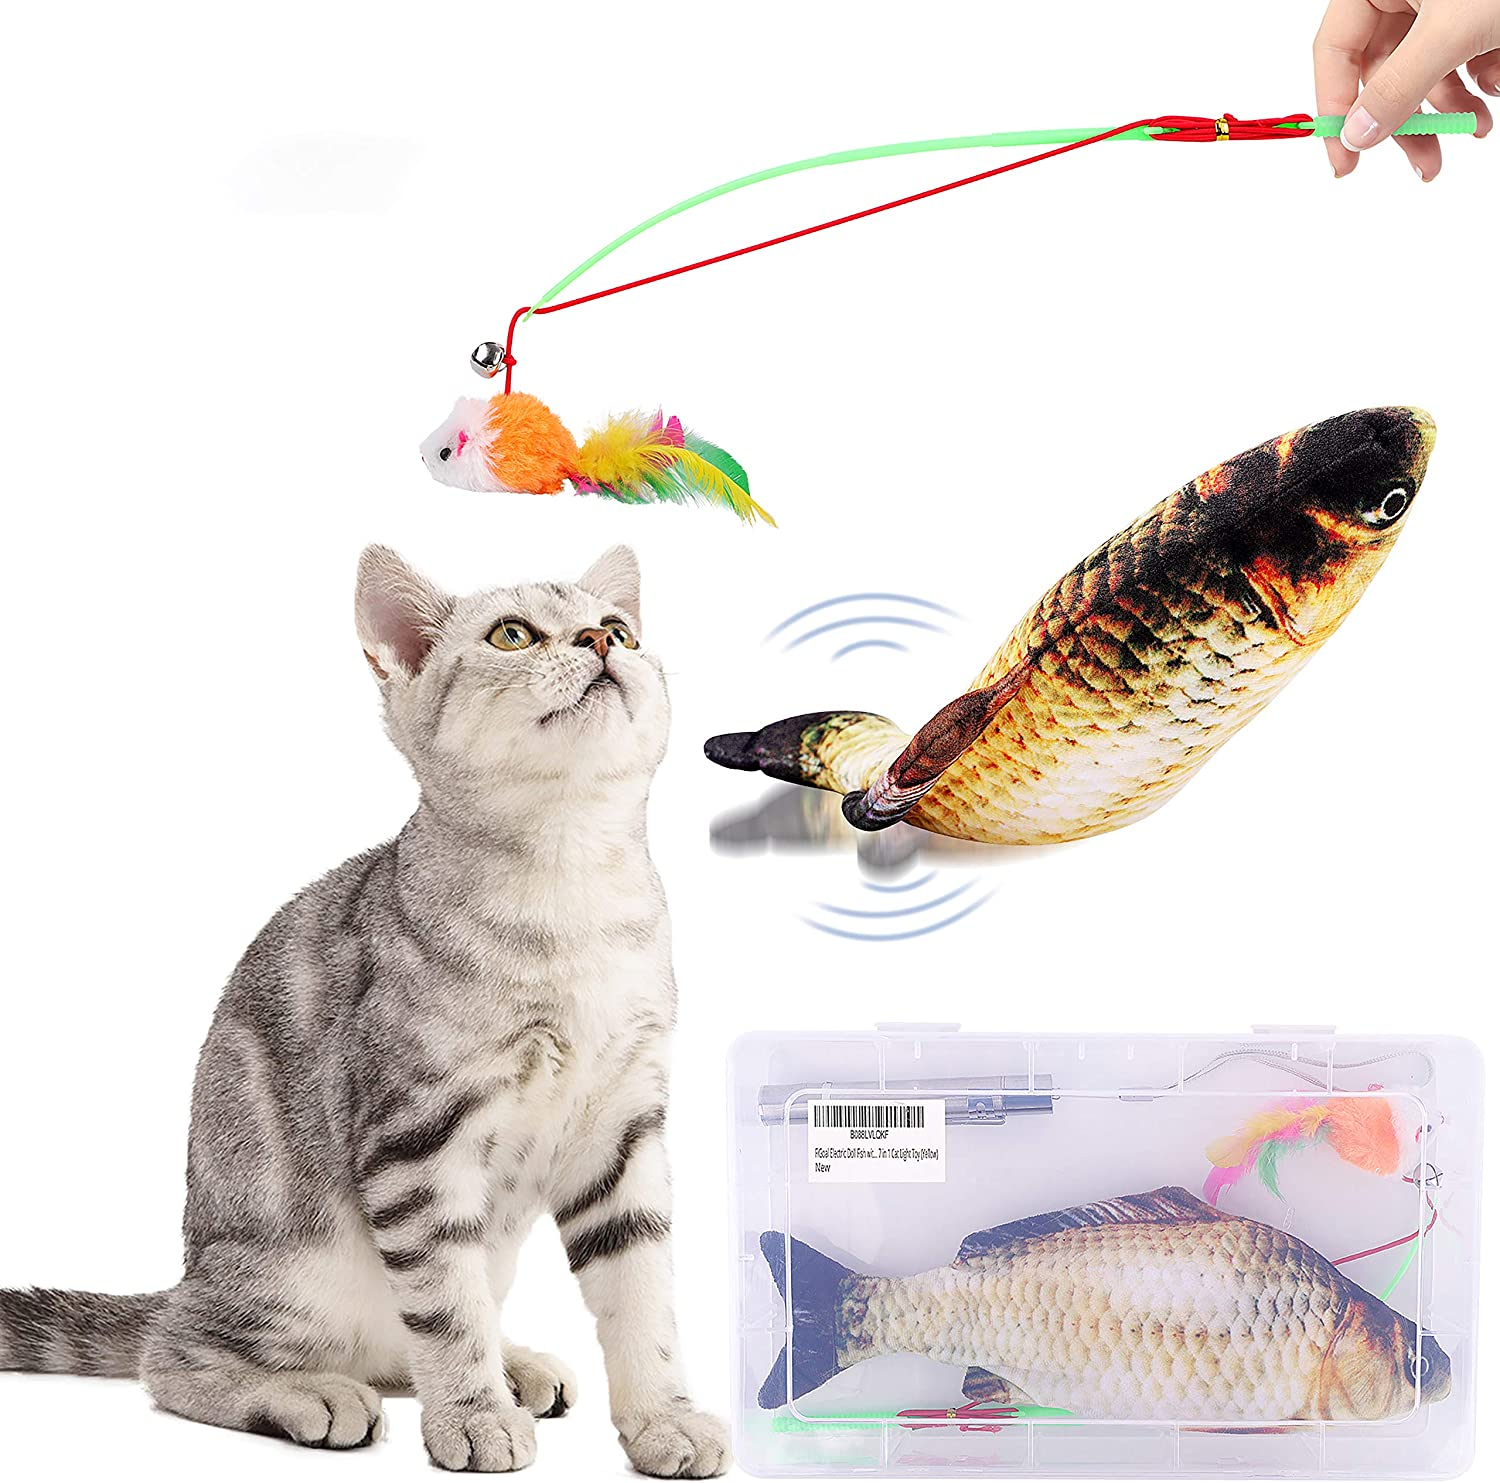 FiGoal Cat Toy Set Realistic Moving Fish Flopping Interactive Wiggle Moving Cat Kicker Fish Toy with Plush Interactive Cat Toys, Fun Toy for Cat Exercise Yellow